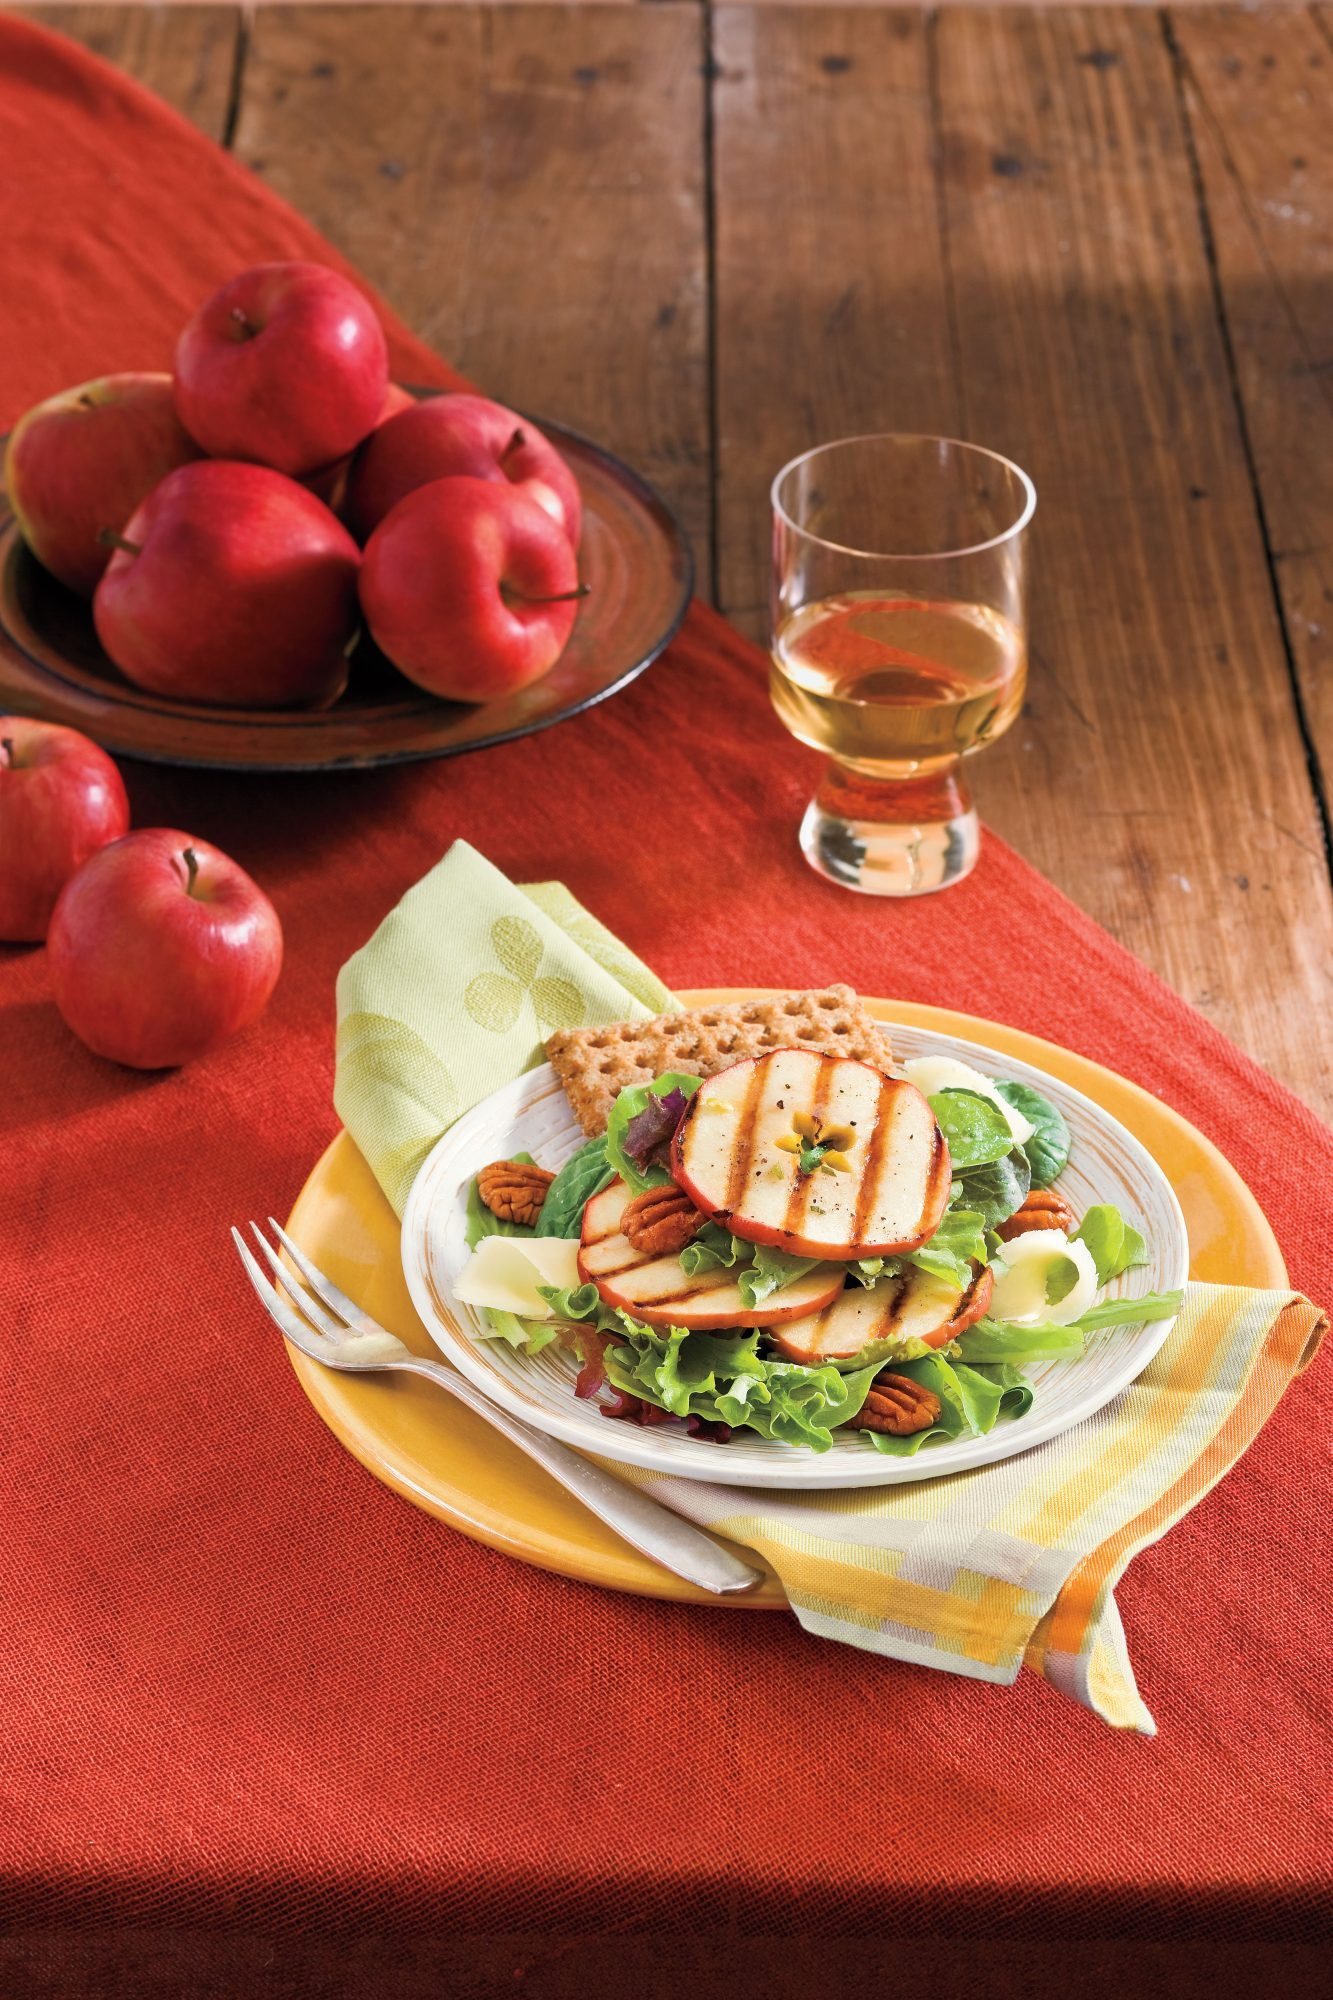 Vegetarian Grilling Recipes: Grilled Apple Salad